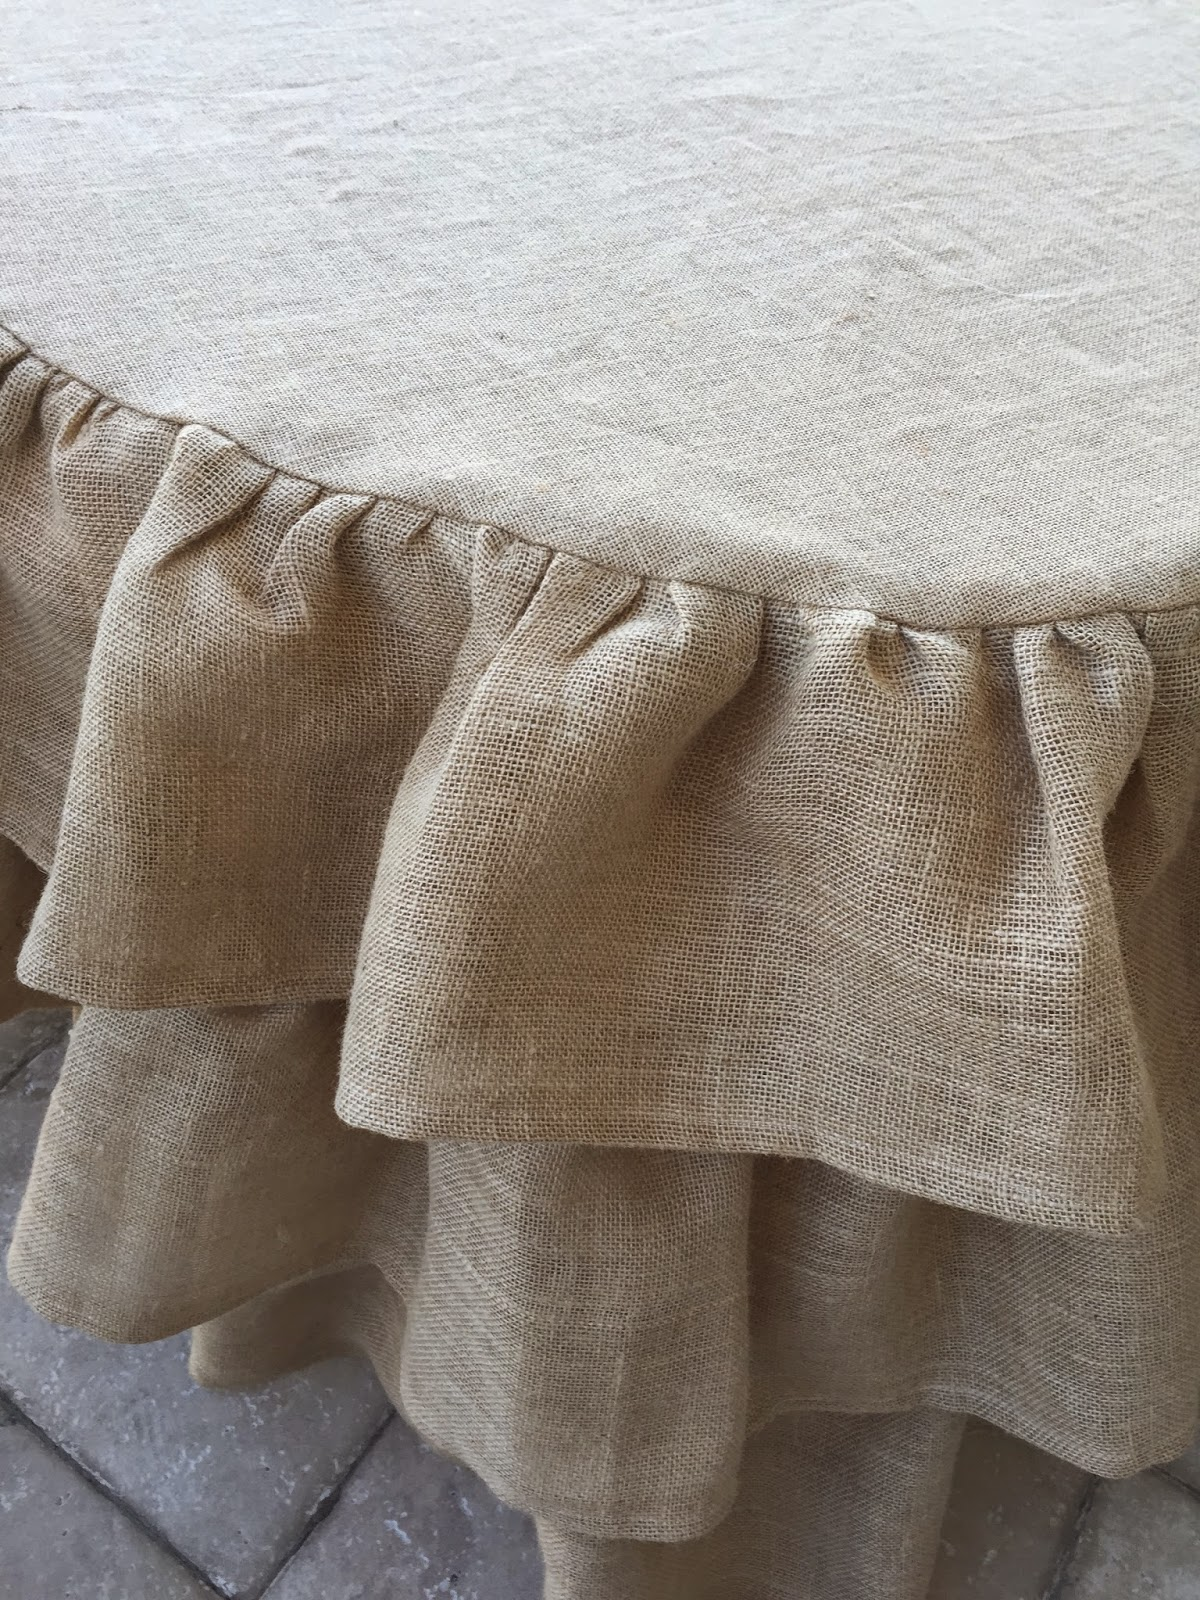 Ruffled Round Burlap Tablecloth Tutorial Purple Chocolat